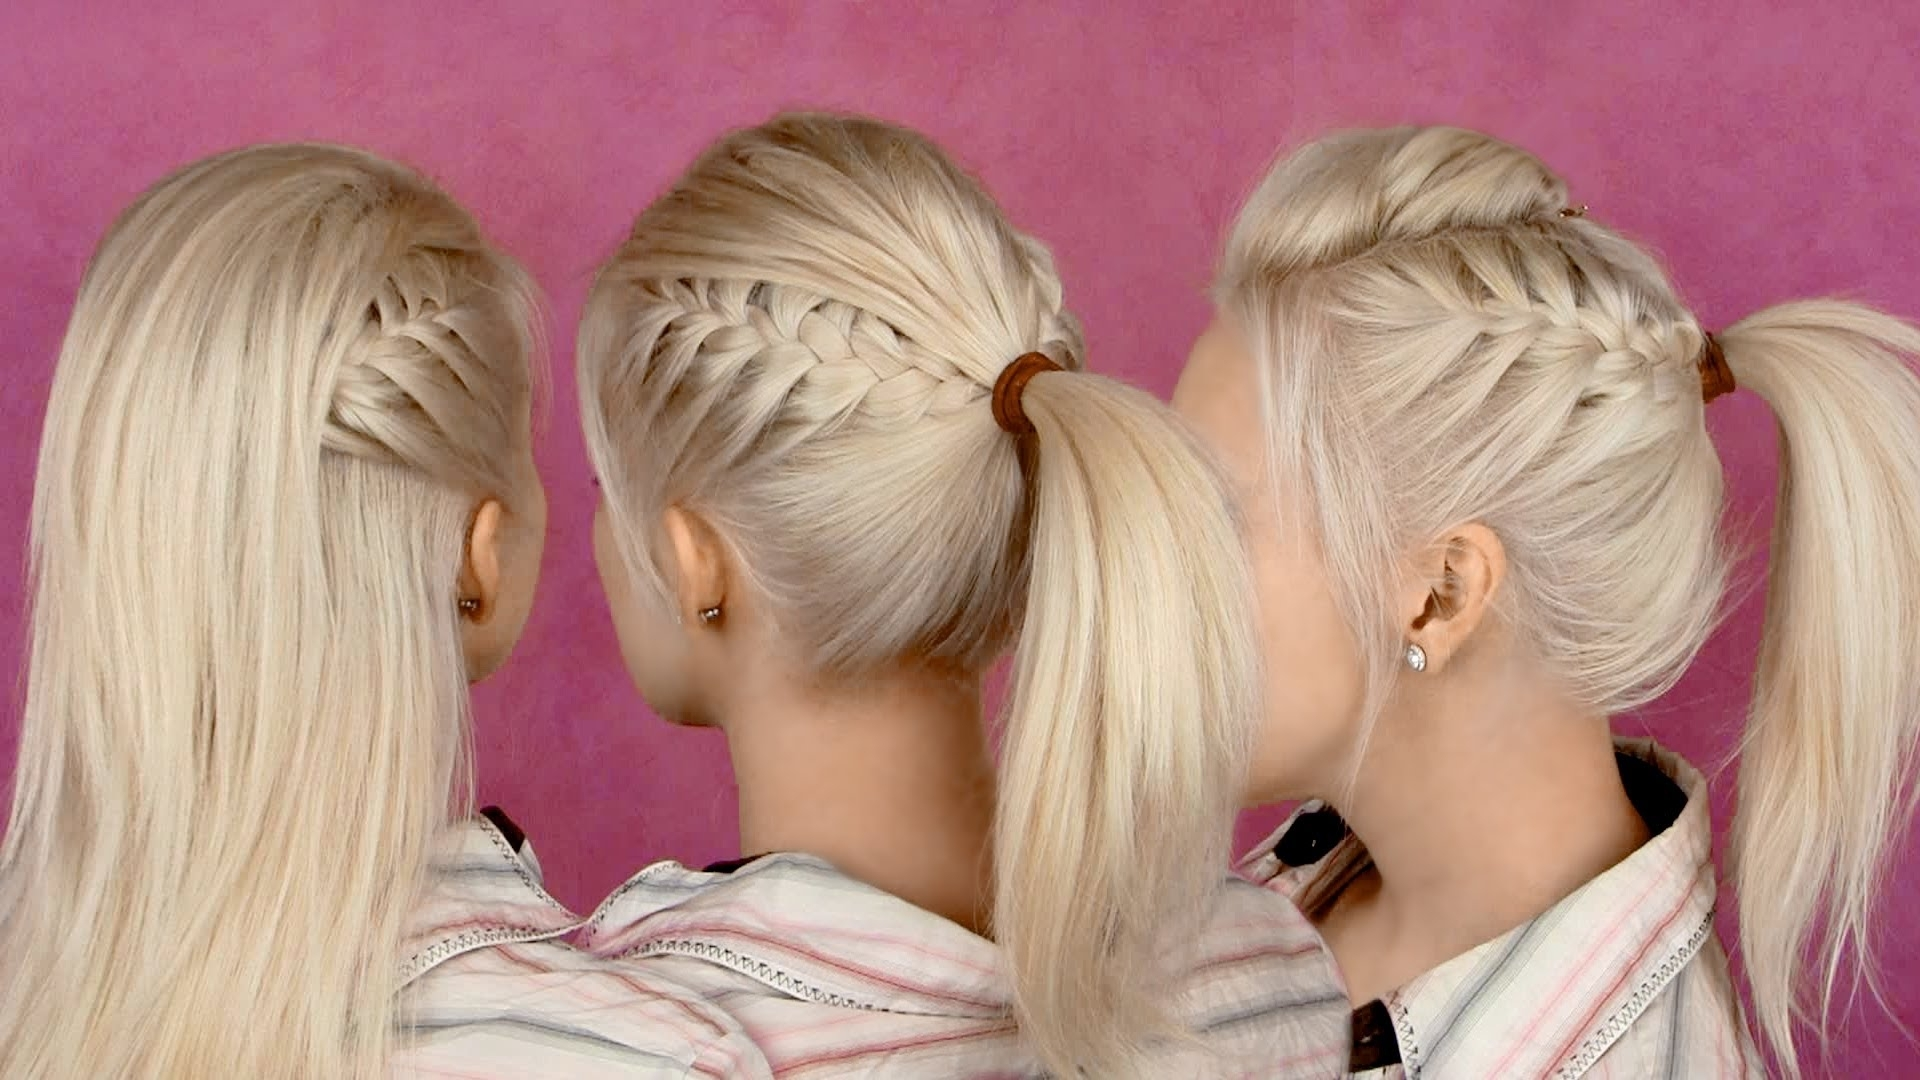 Back To School Hairstyles For Everyday: Braided Half Updo And Pertaining To Most Up To Date Perfectly Undone Half Braid Ponytail (View 20 of 20)